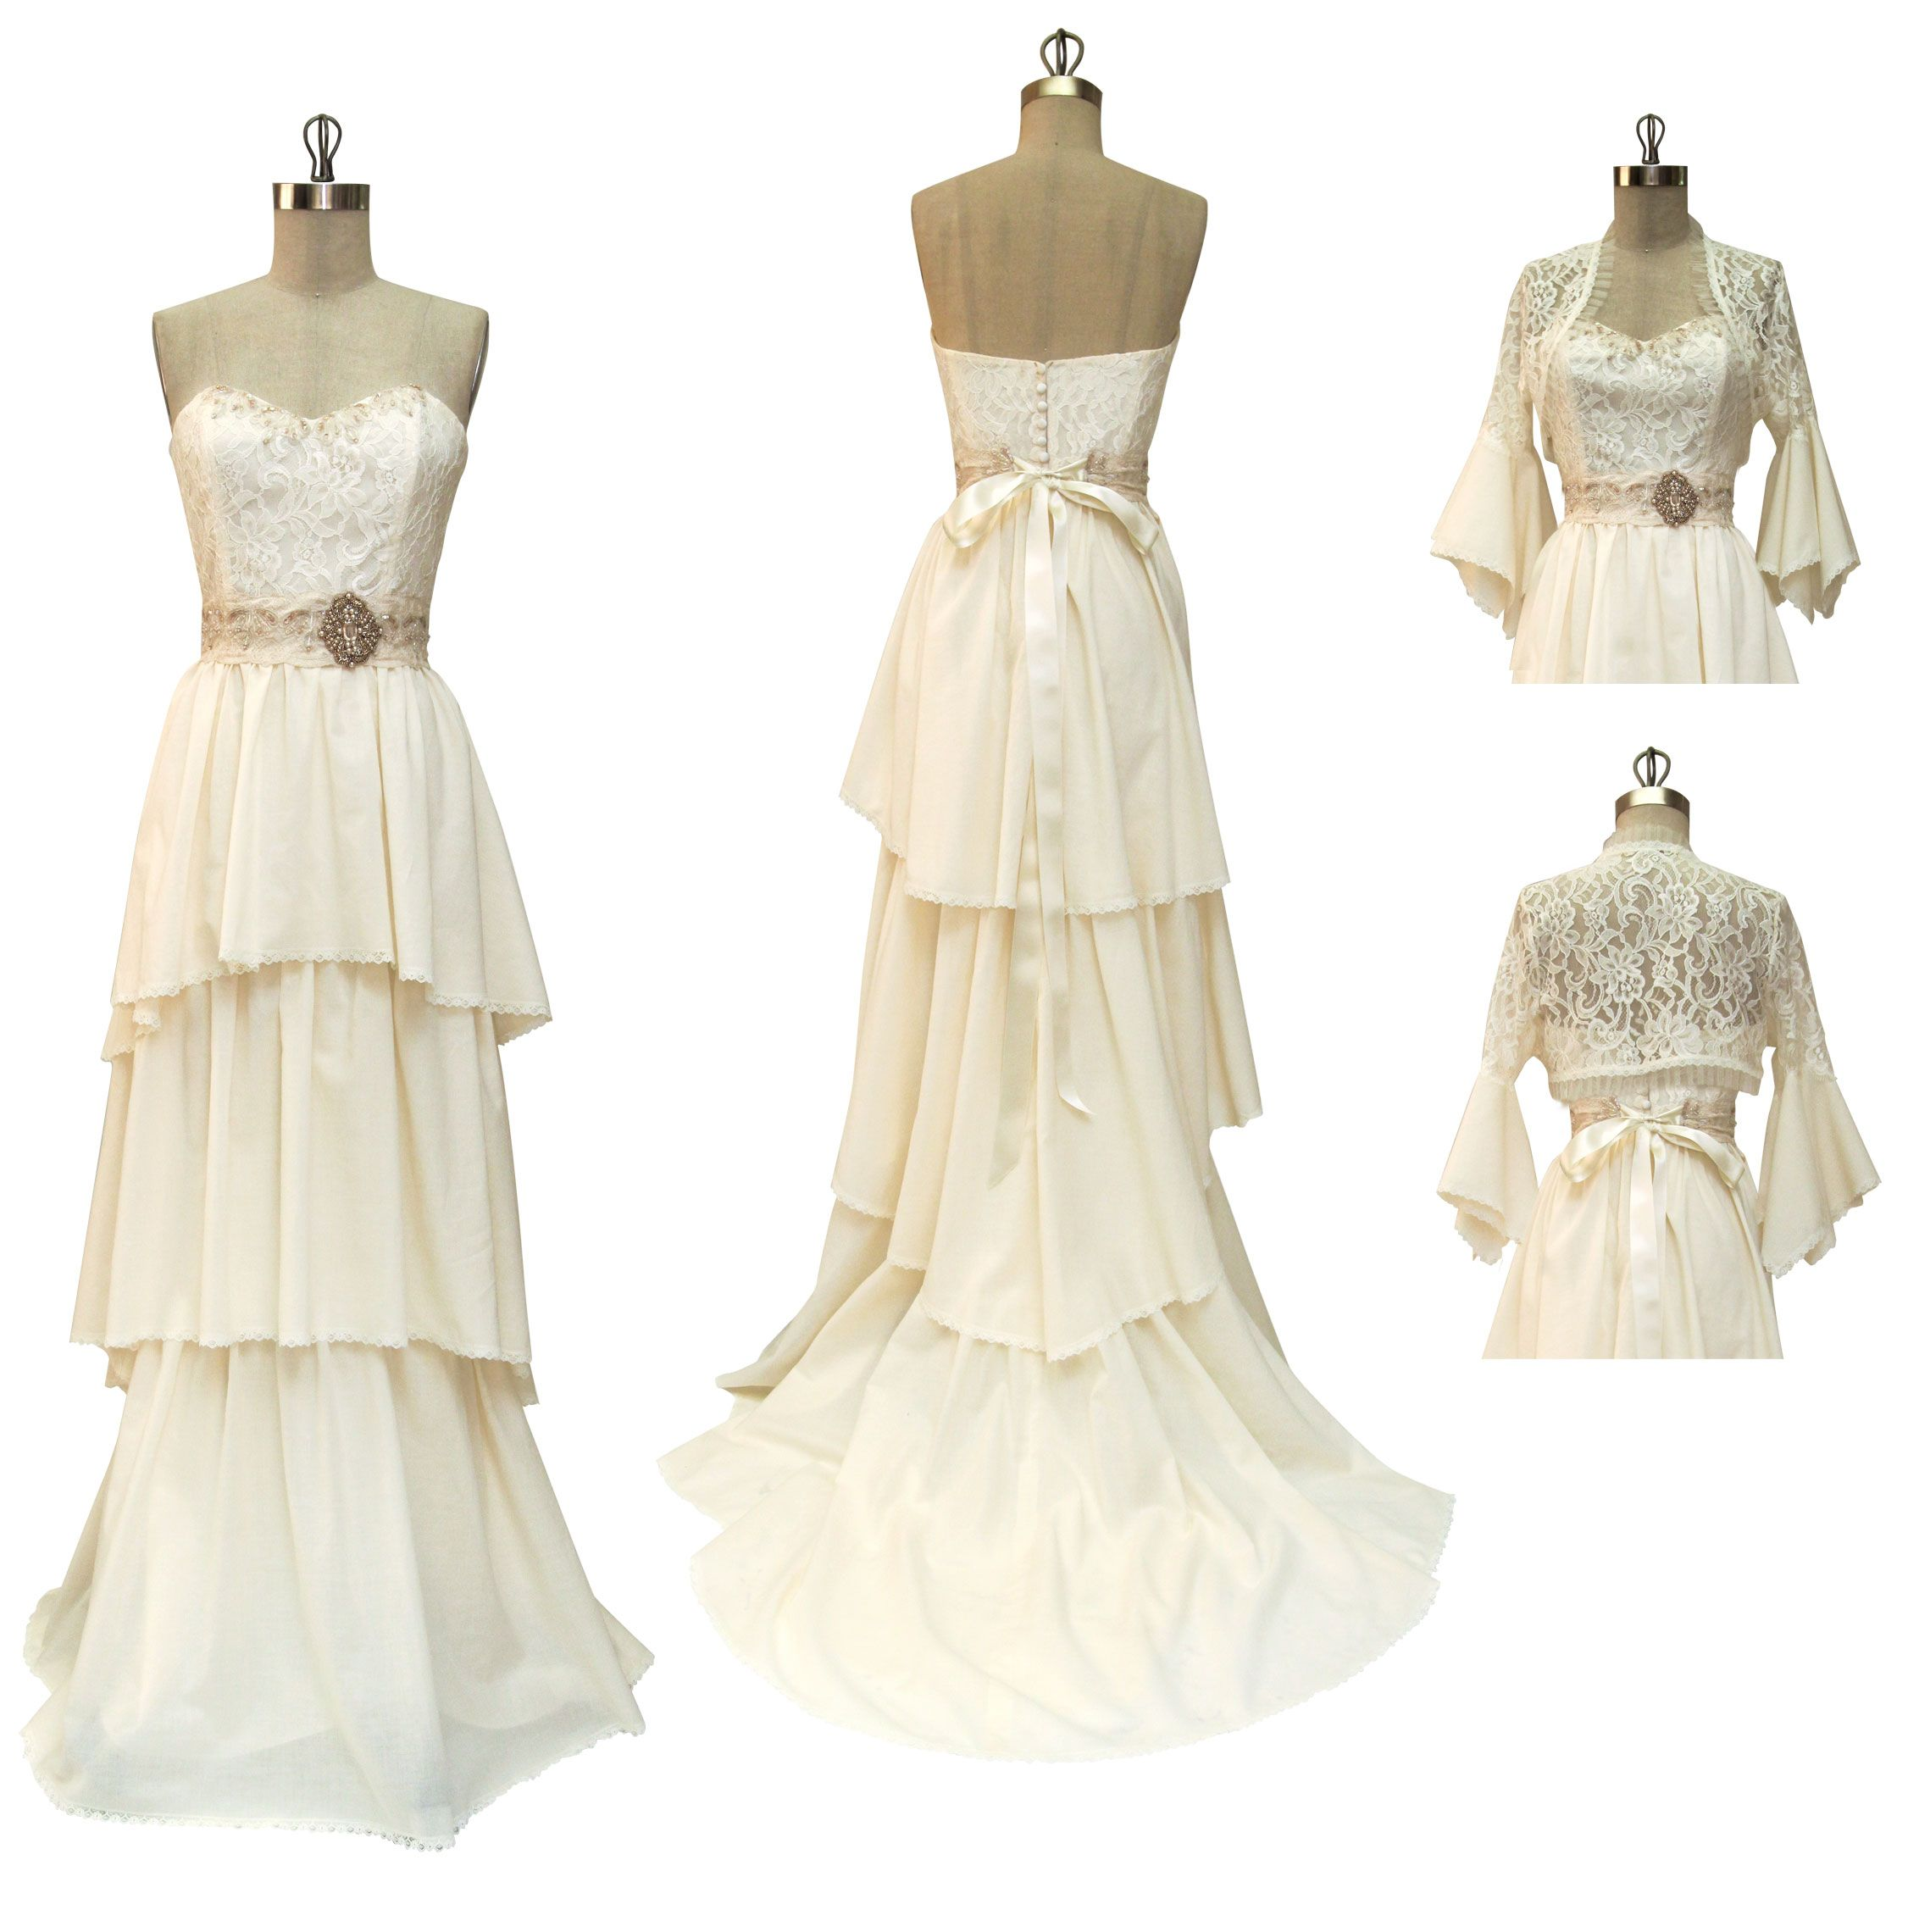 Vintage romantic dresses wedding dresses pinterest bridal vintage inspired ivory bridal gown with antique bridal belt and romantic tiered layers by claire pet ombrellifo Image collections